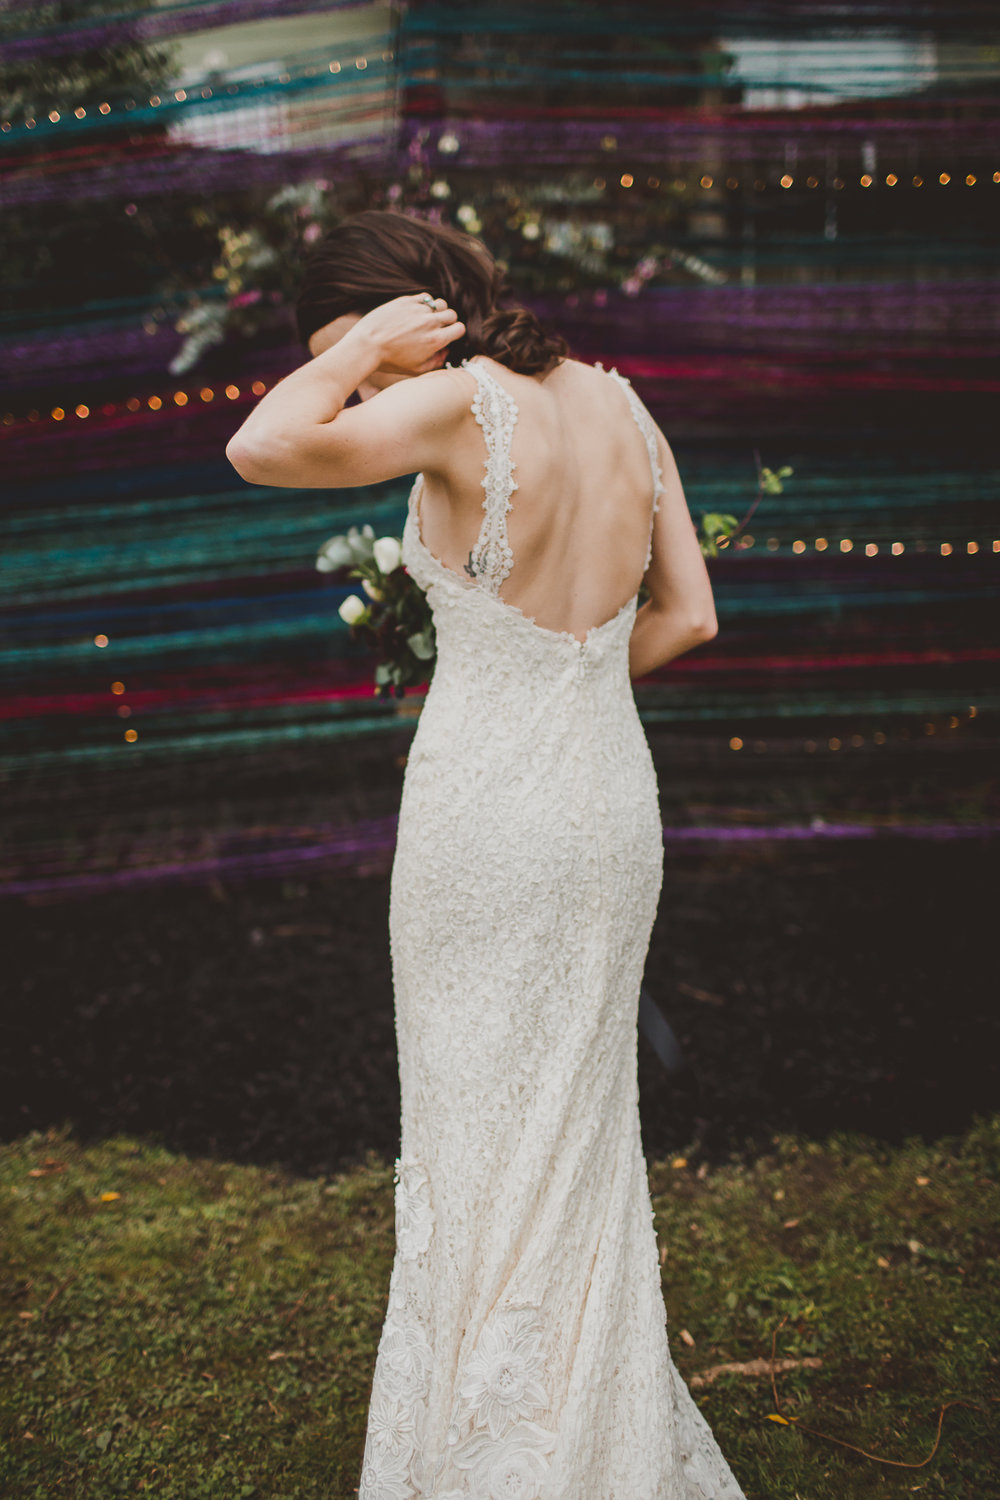 Intimate Backyard Wedding in Cabbagetown - Annie and Chris